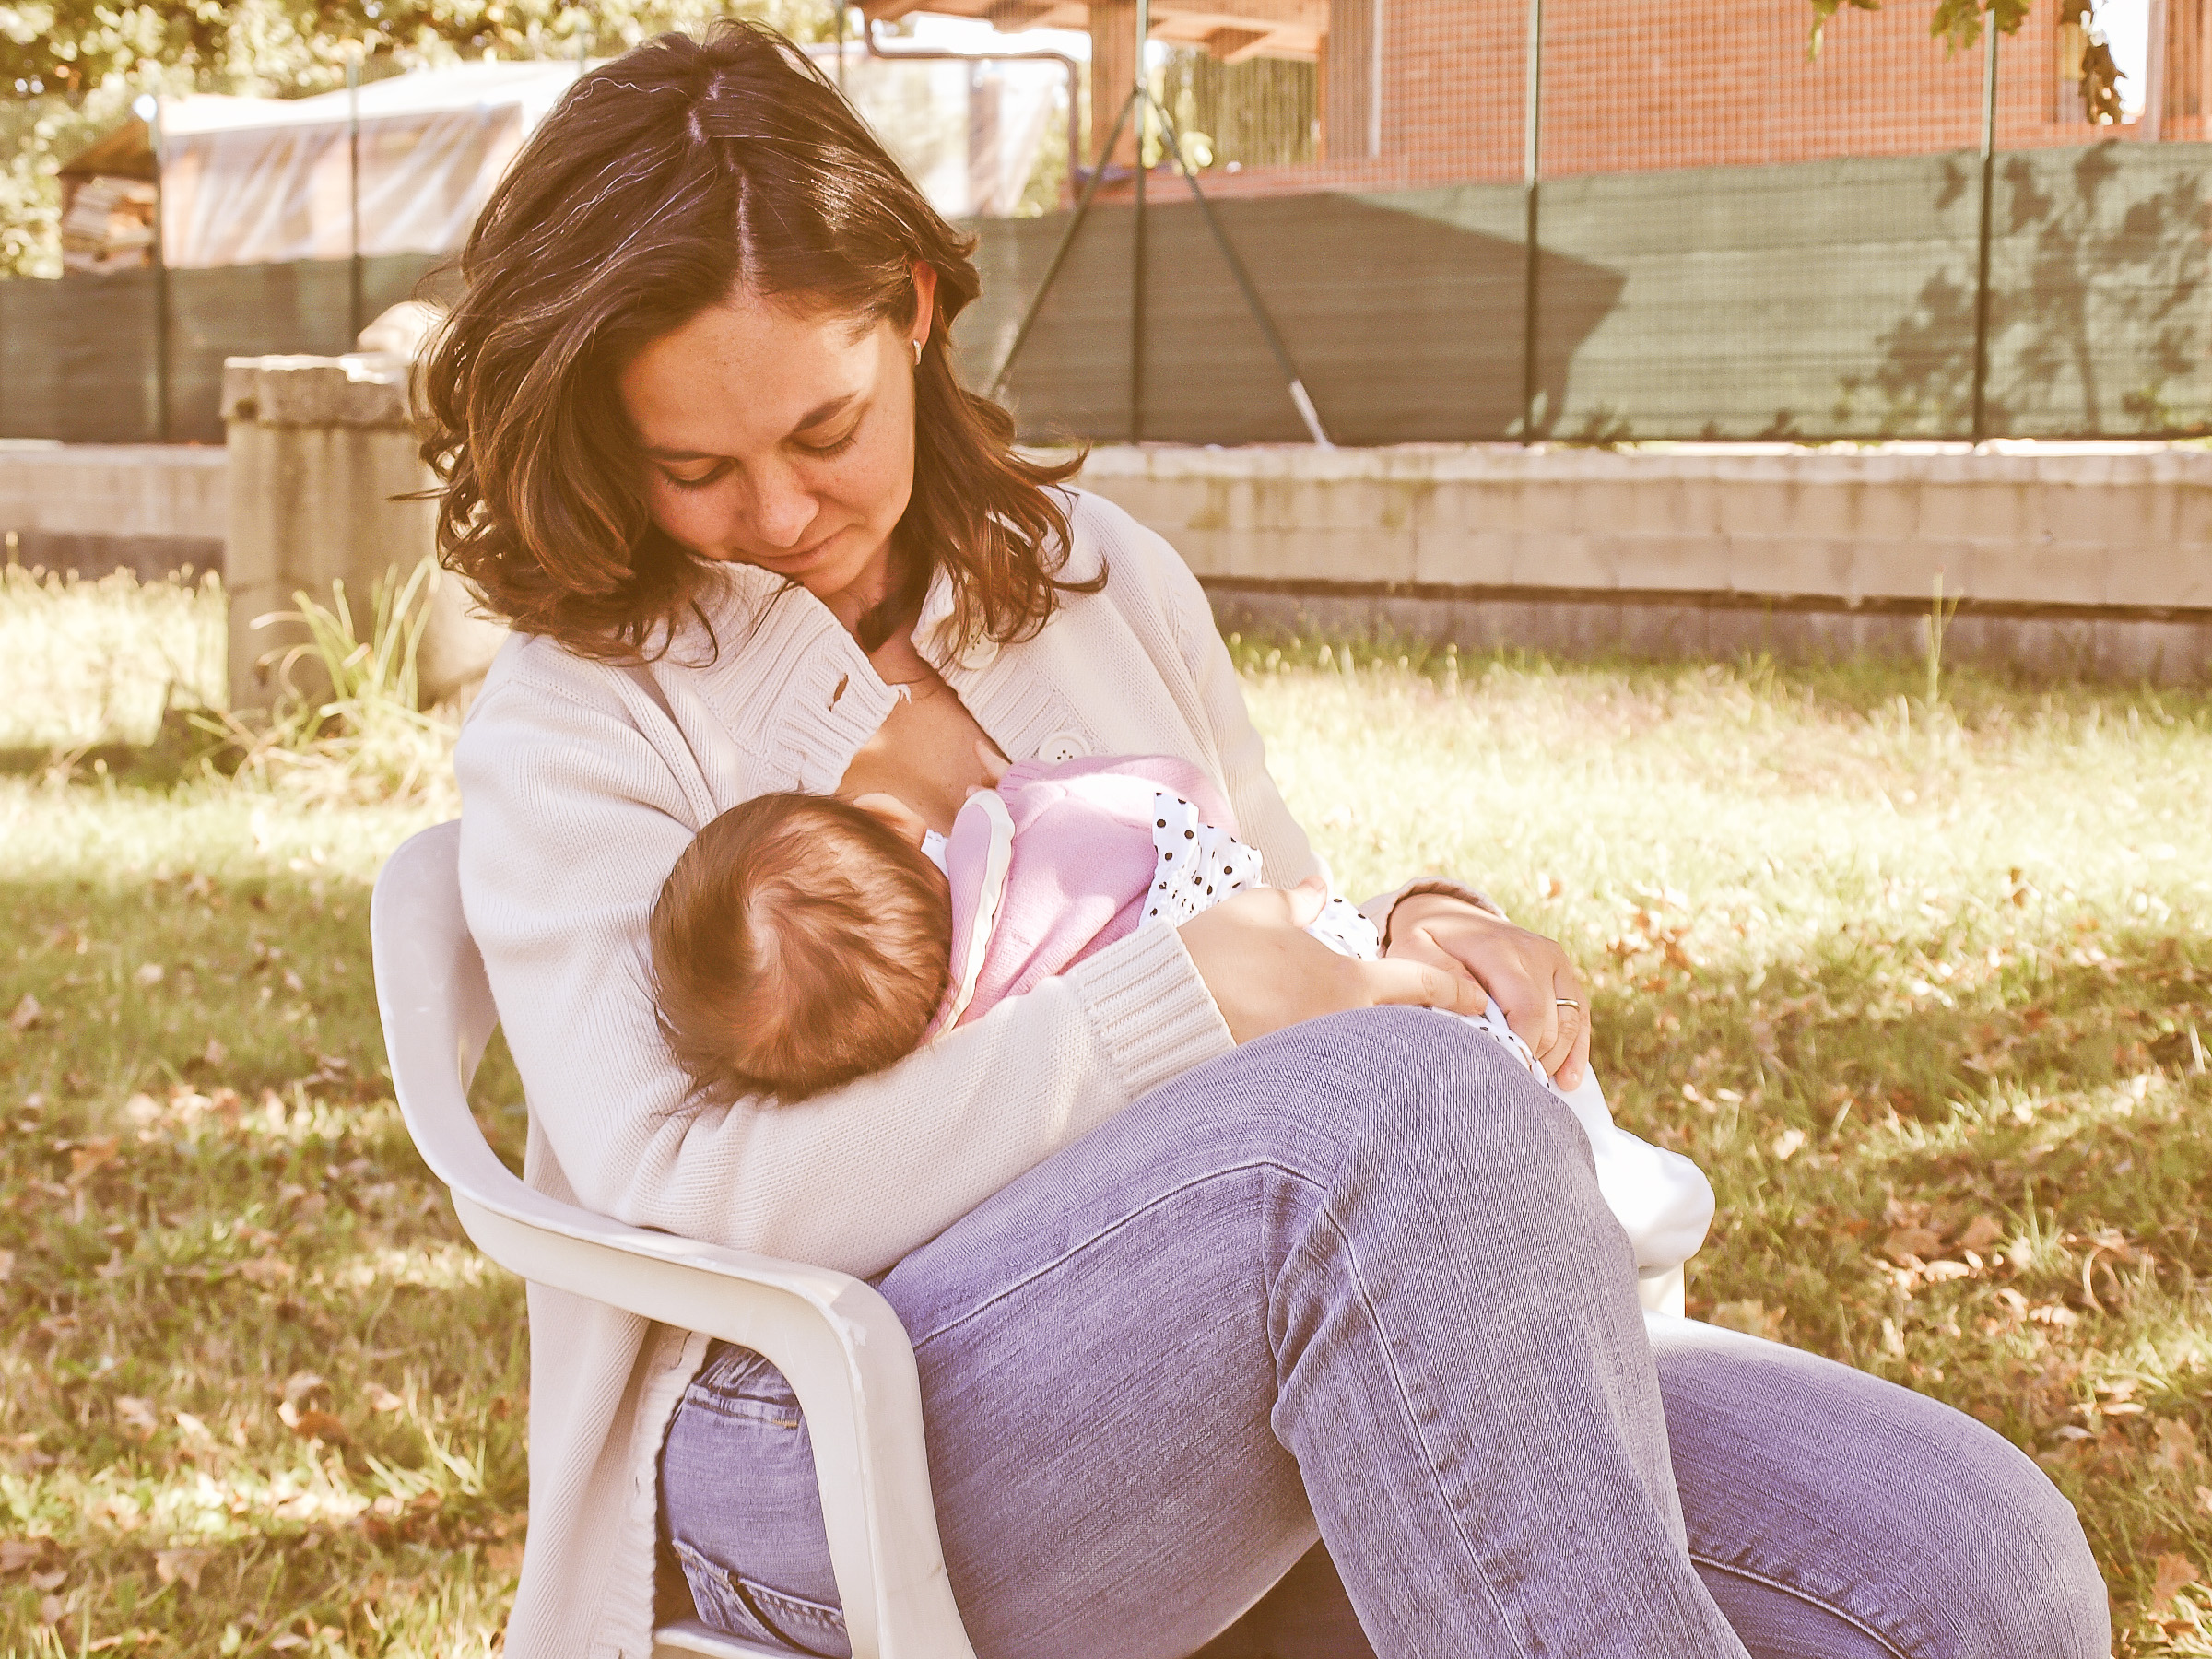 I breastfeed - it hurts my chest: what to do